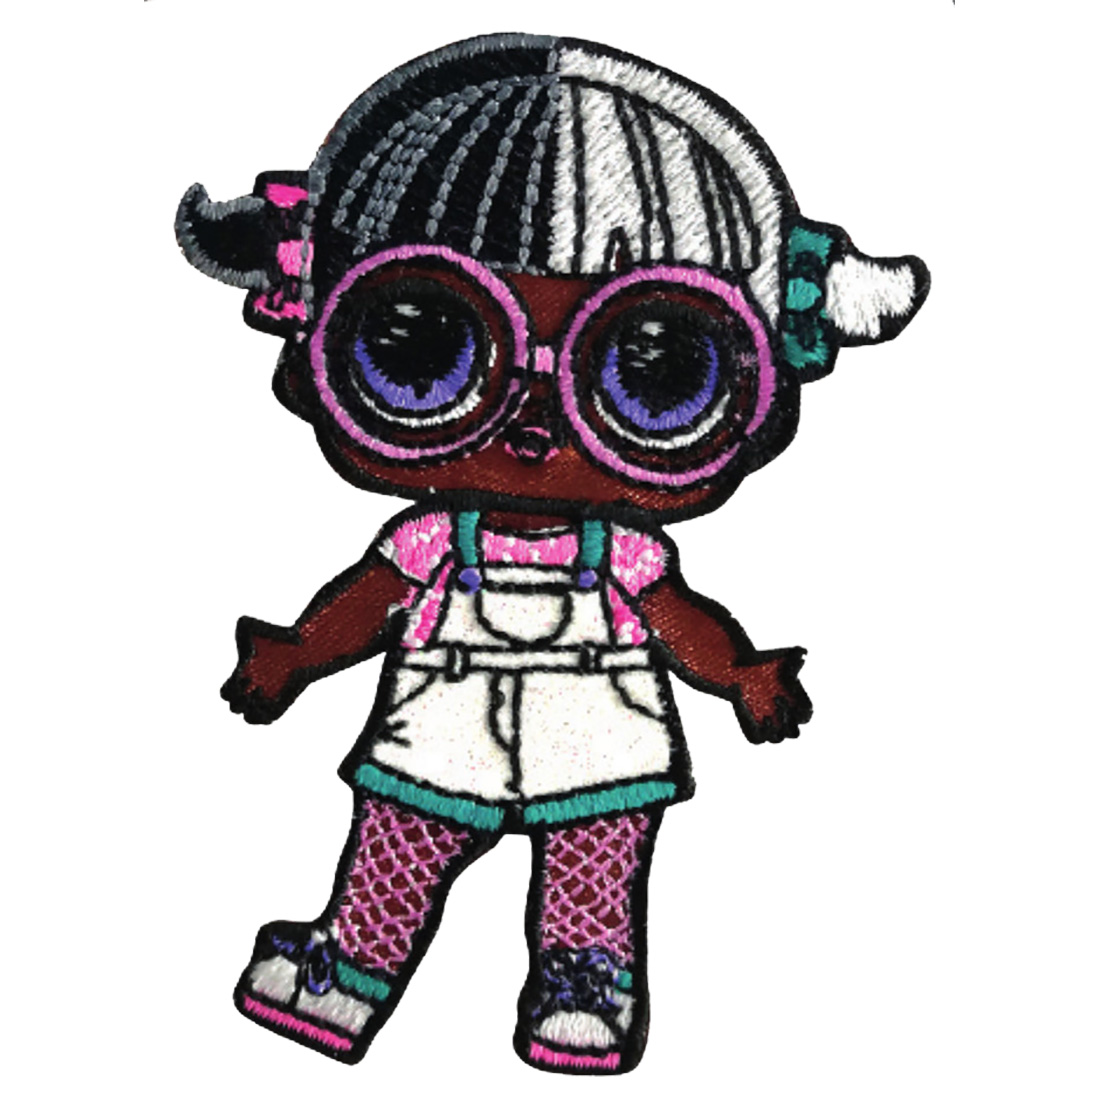 Iron On Patches Lol Surprise Dolls Baby Next Door Colorful 6